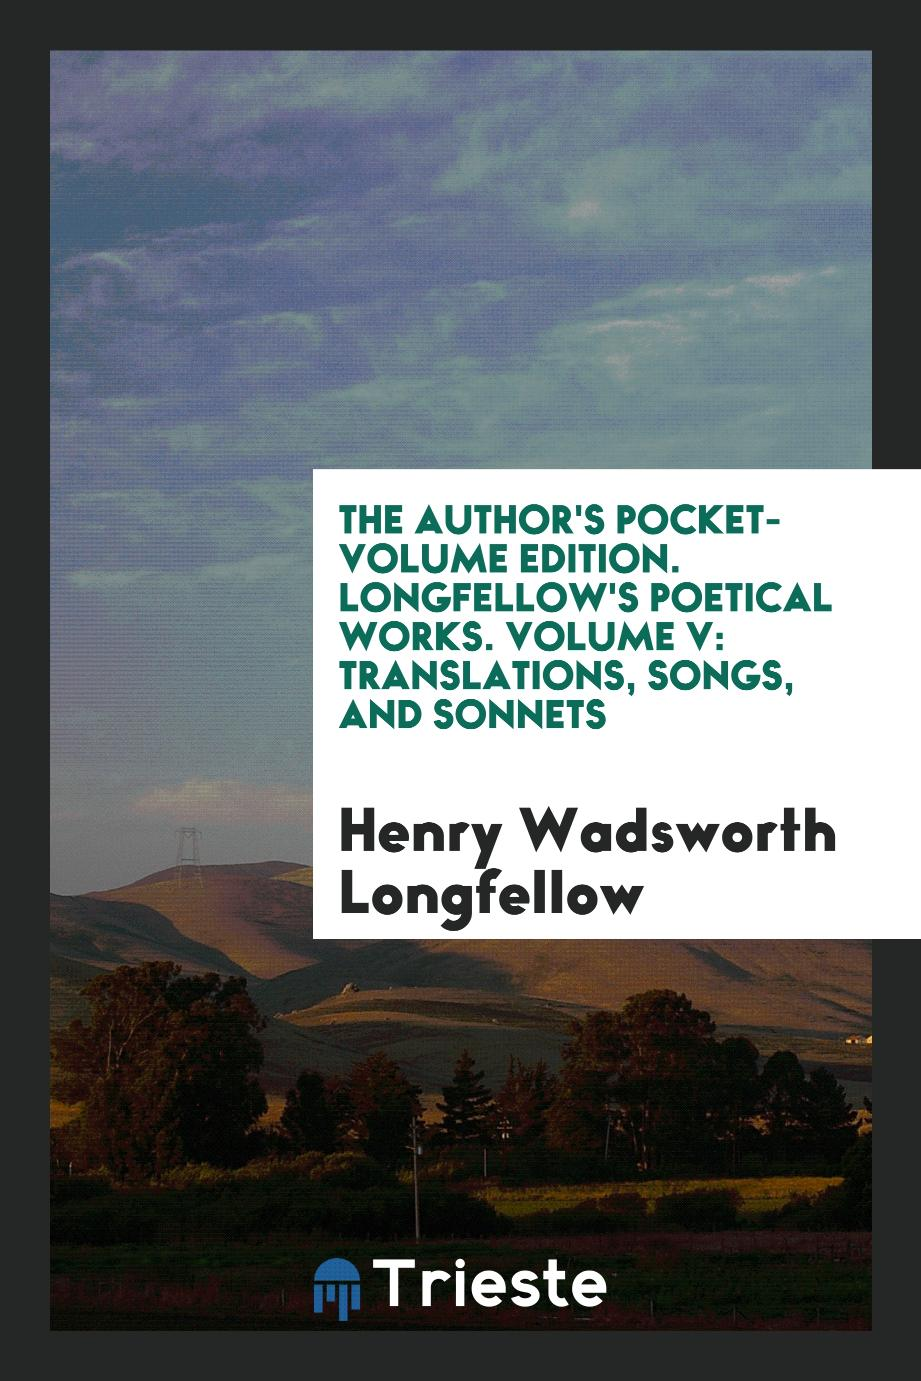 The Author's Pocket-Volume Edition. Longfellow's poetical works. Volume V: Translations, Songs, and Sonnets